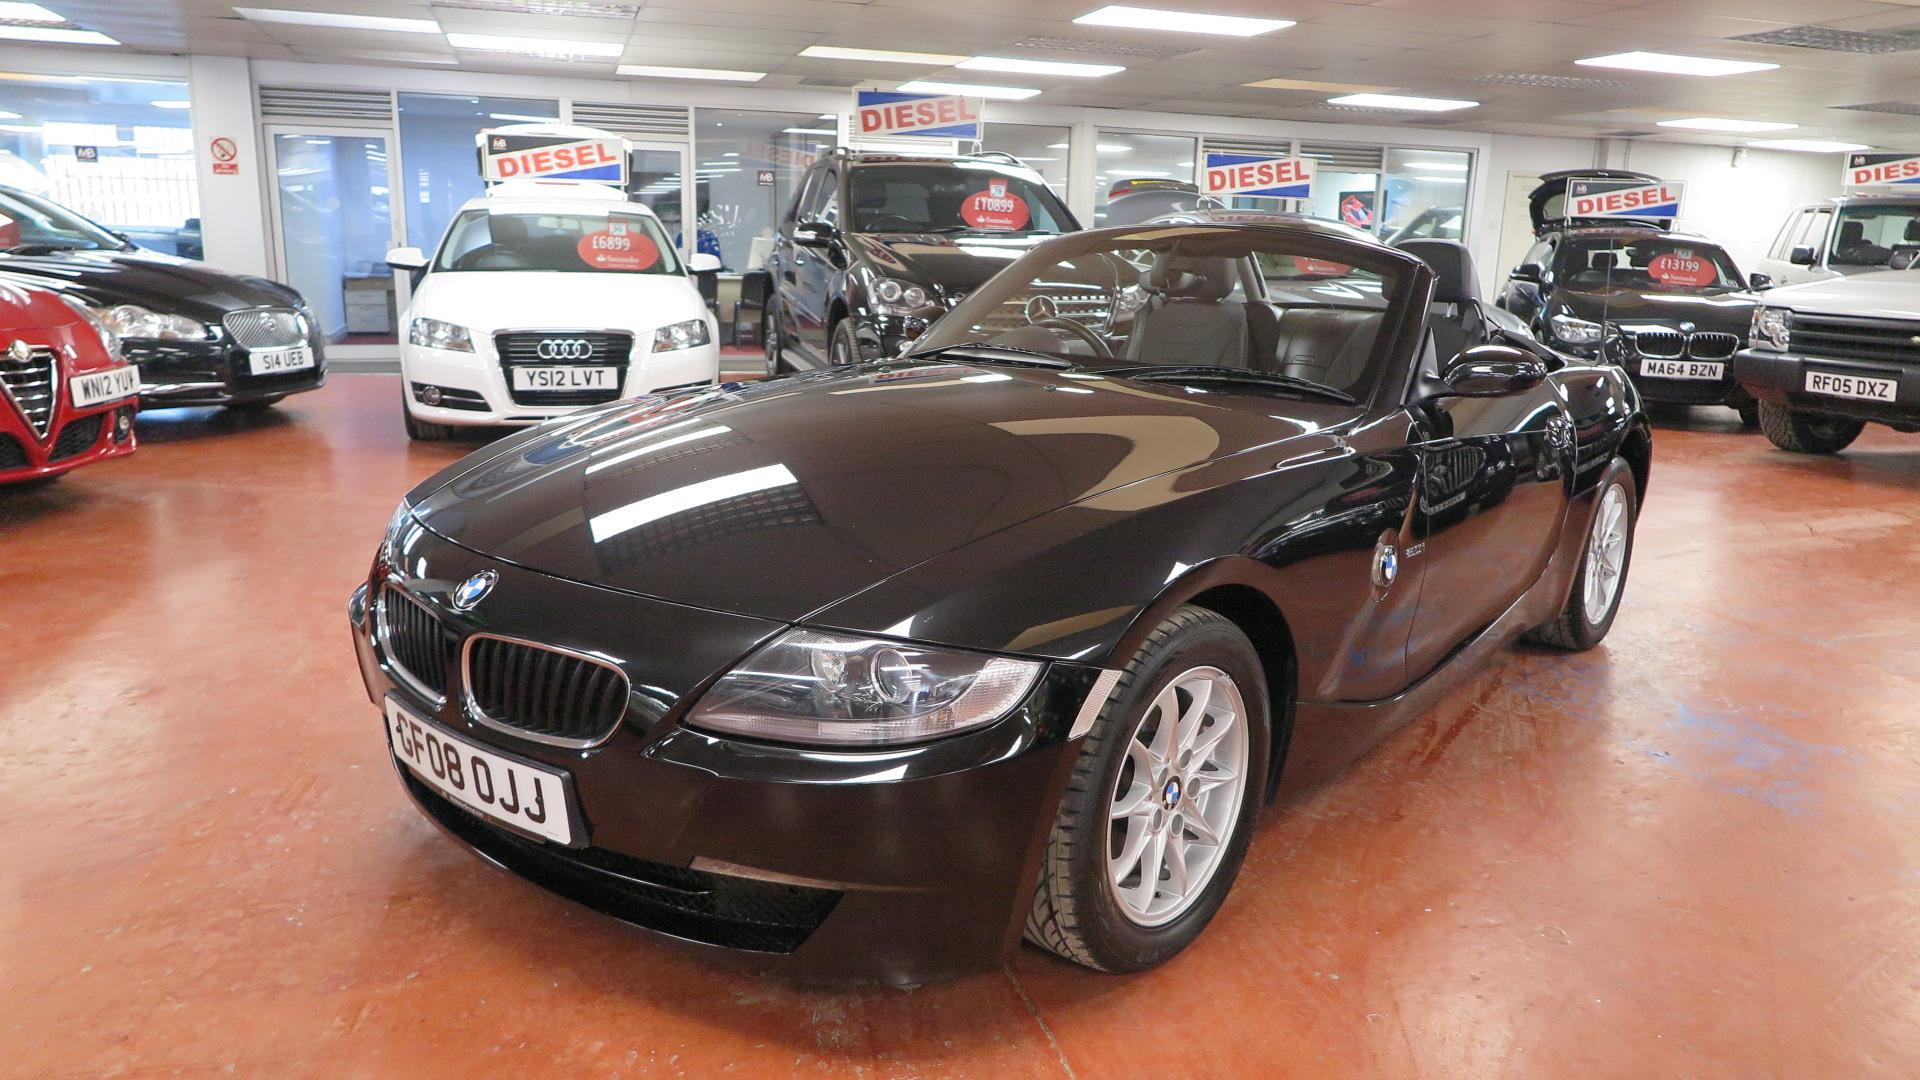 Used Bmw Z4 And Second Hand Bmw Z4 In West Yorkshire